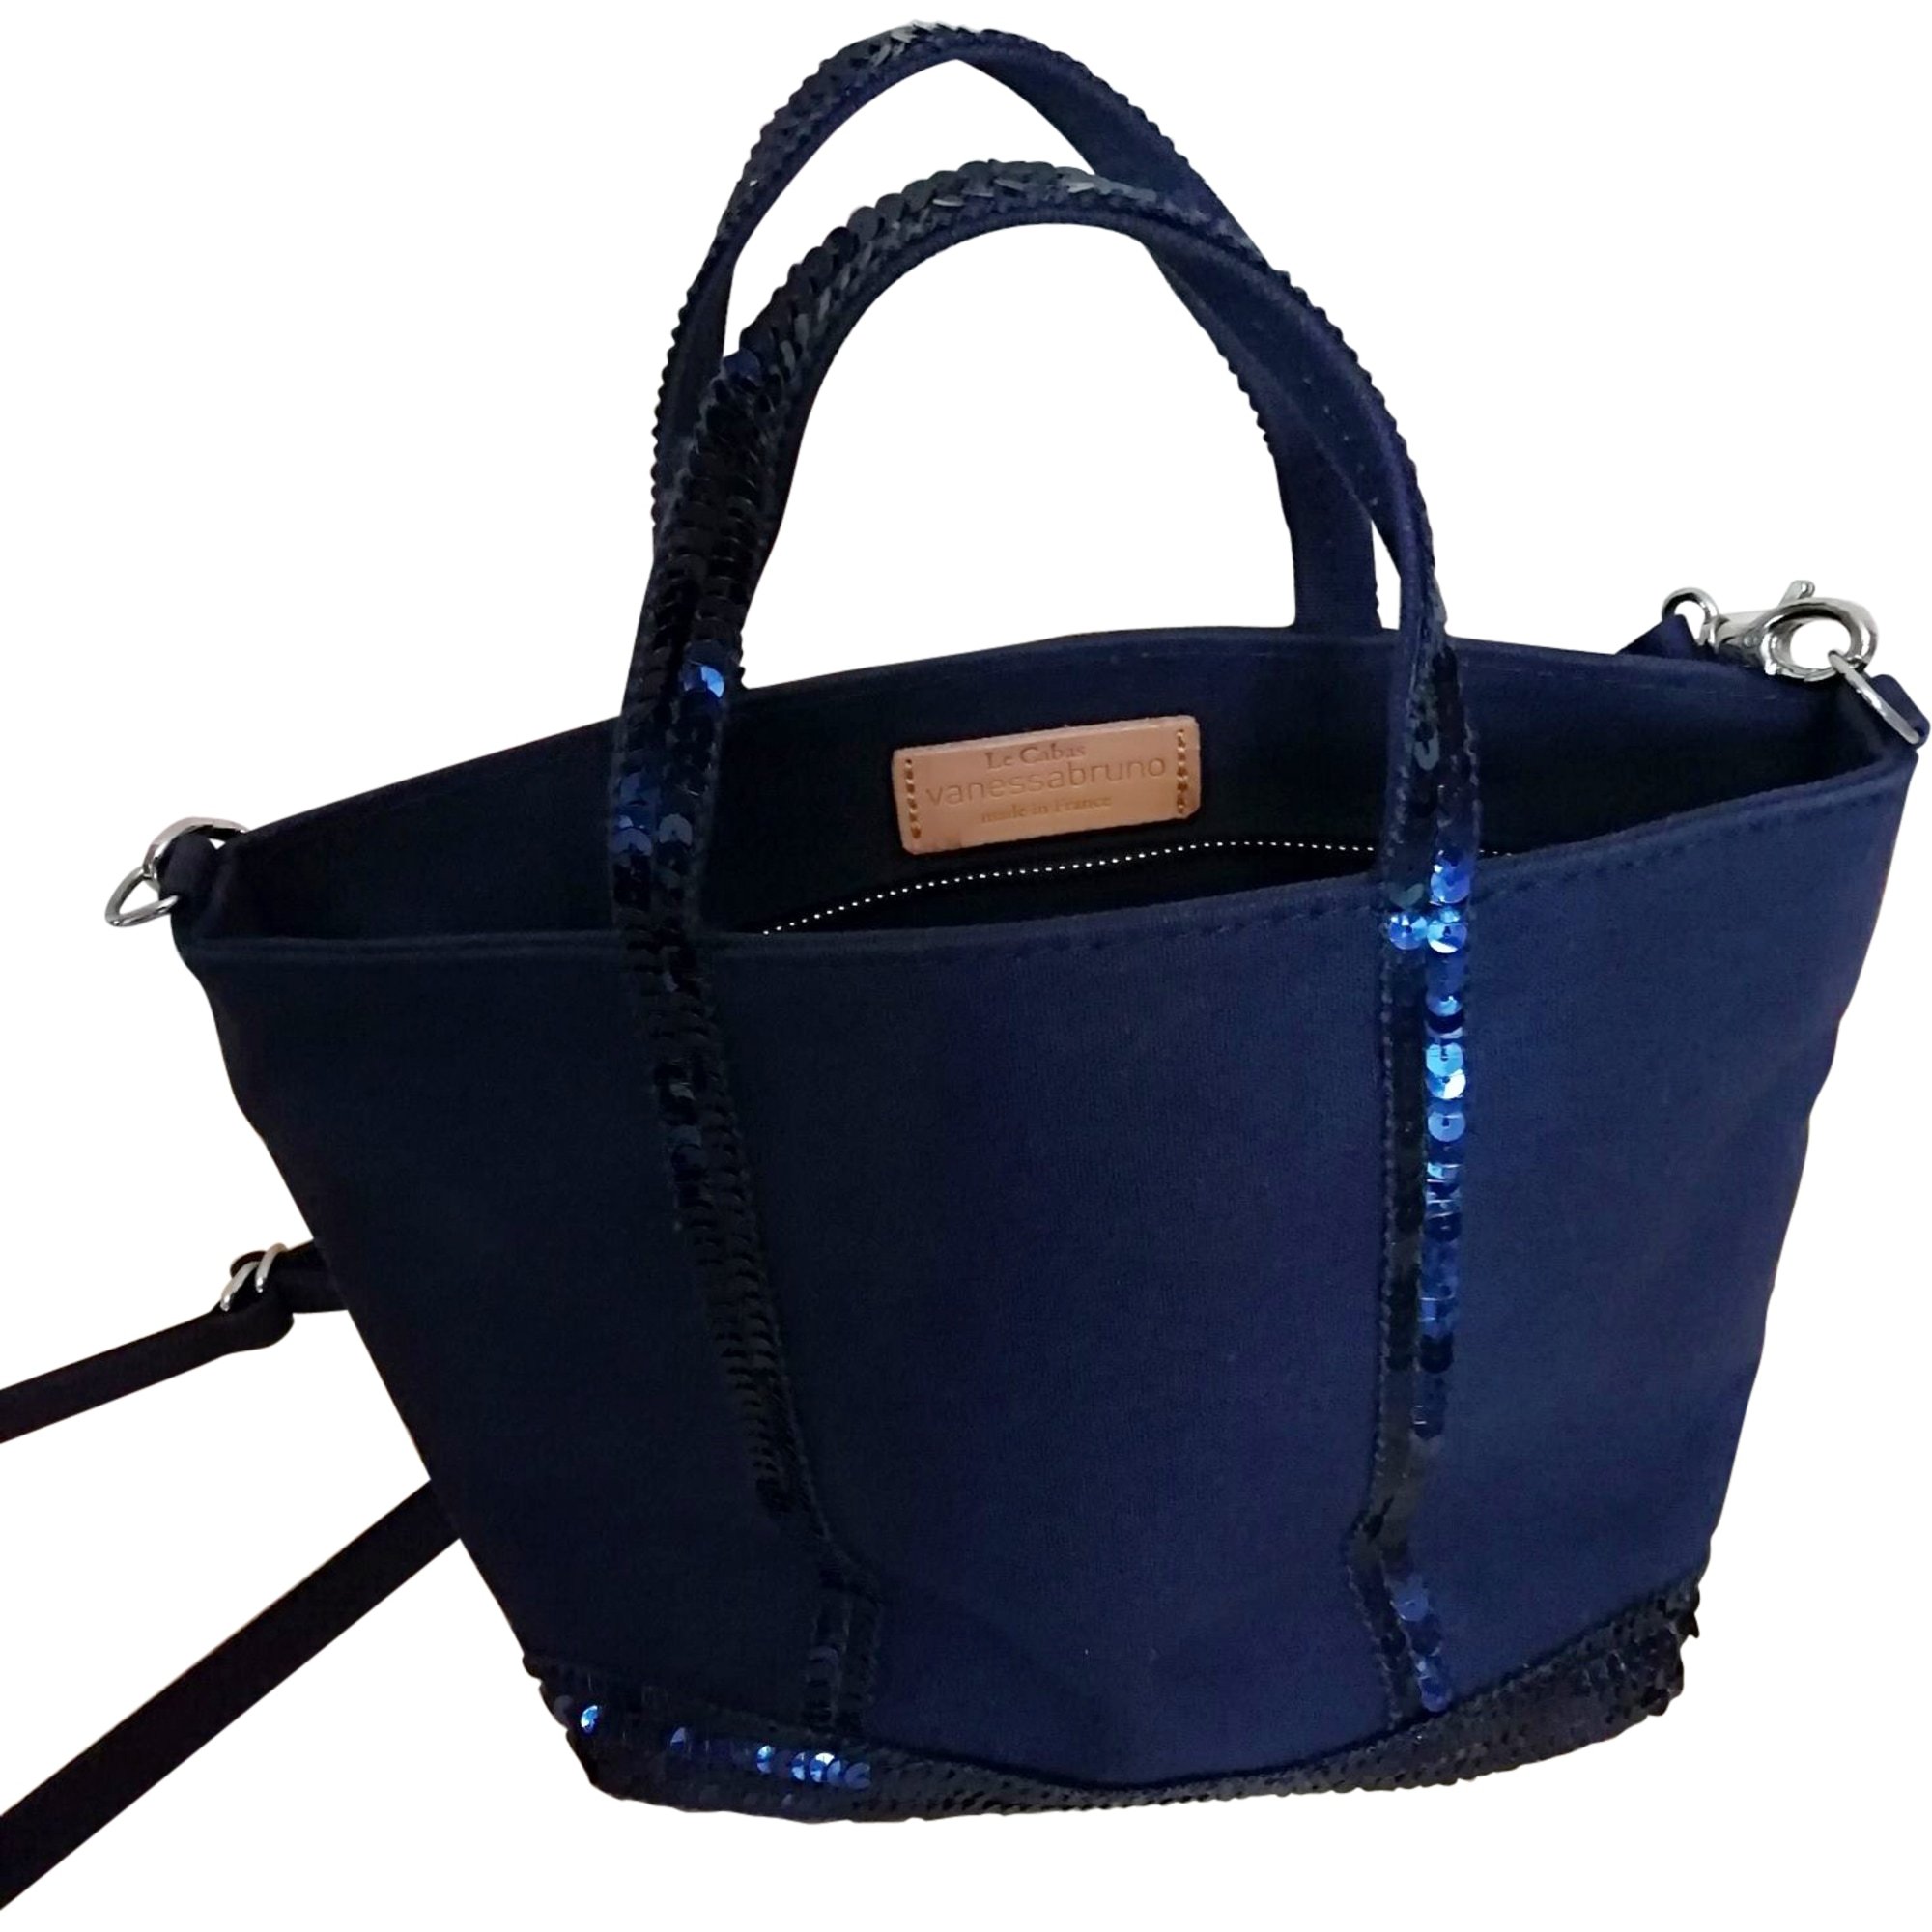 Non-Leather Shoulder Bag VANESSA BRUNO Blue, navy, turquoise